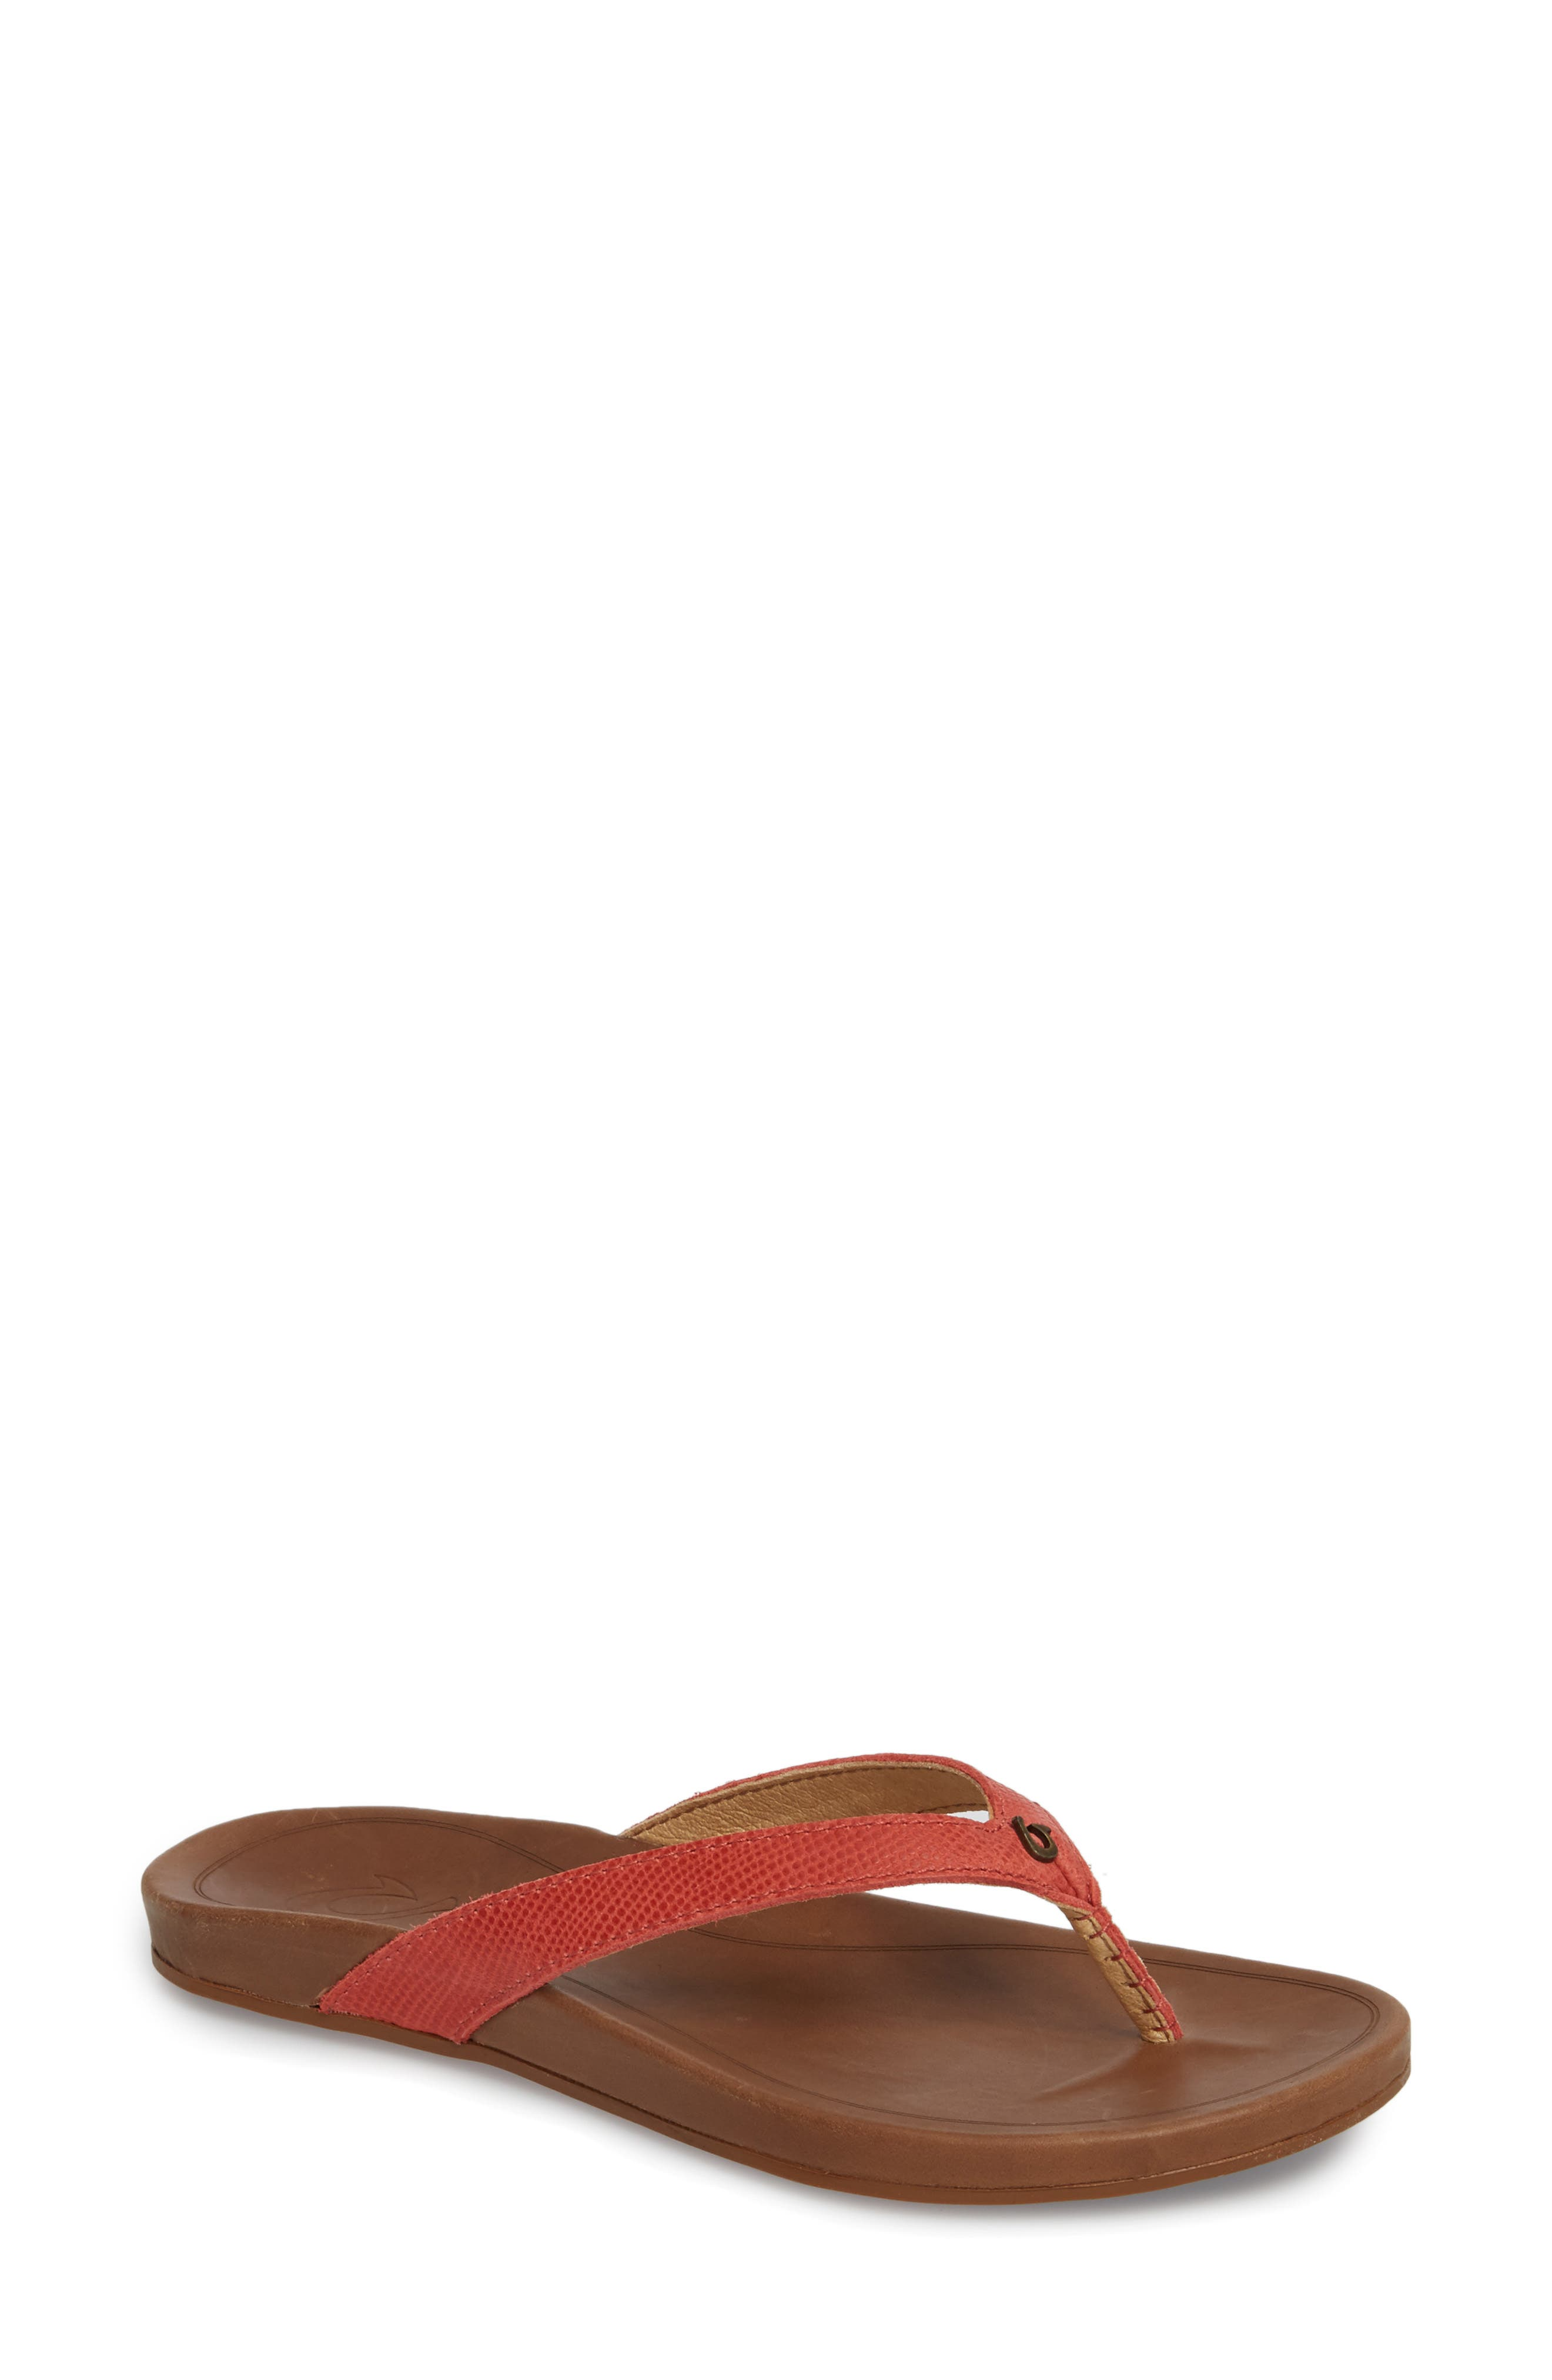 'Hi Ona' Flip Flop,                         Main,                         color, 644